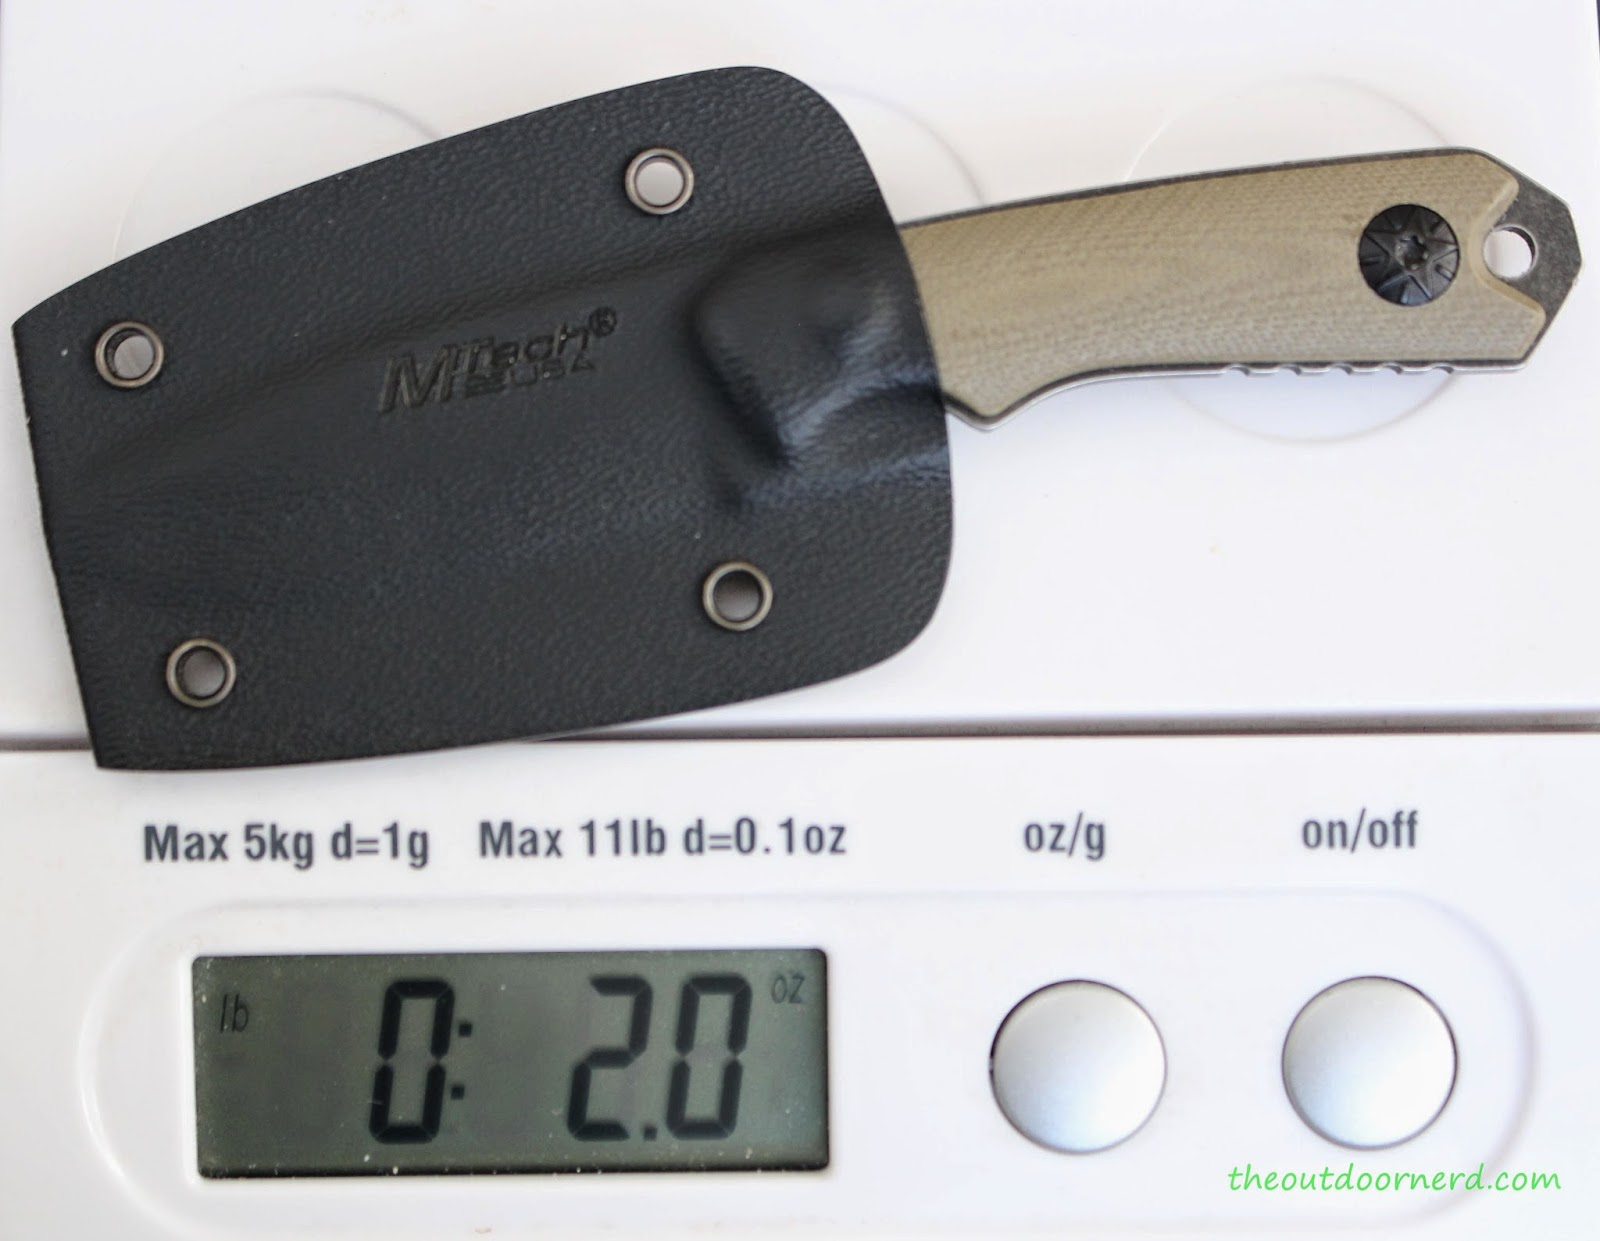 MTECH MT-20-30 Fixed Blade Knife: On Scale